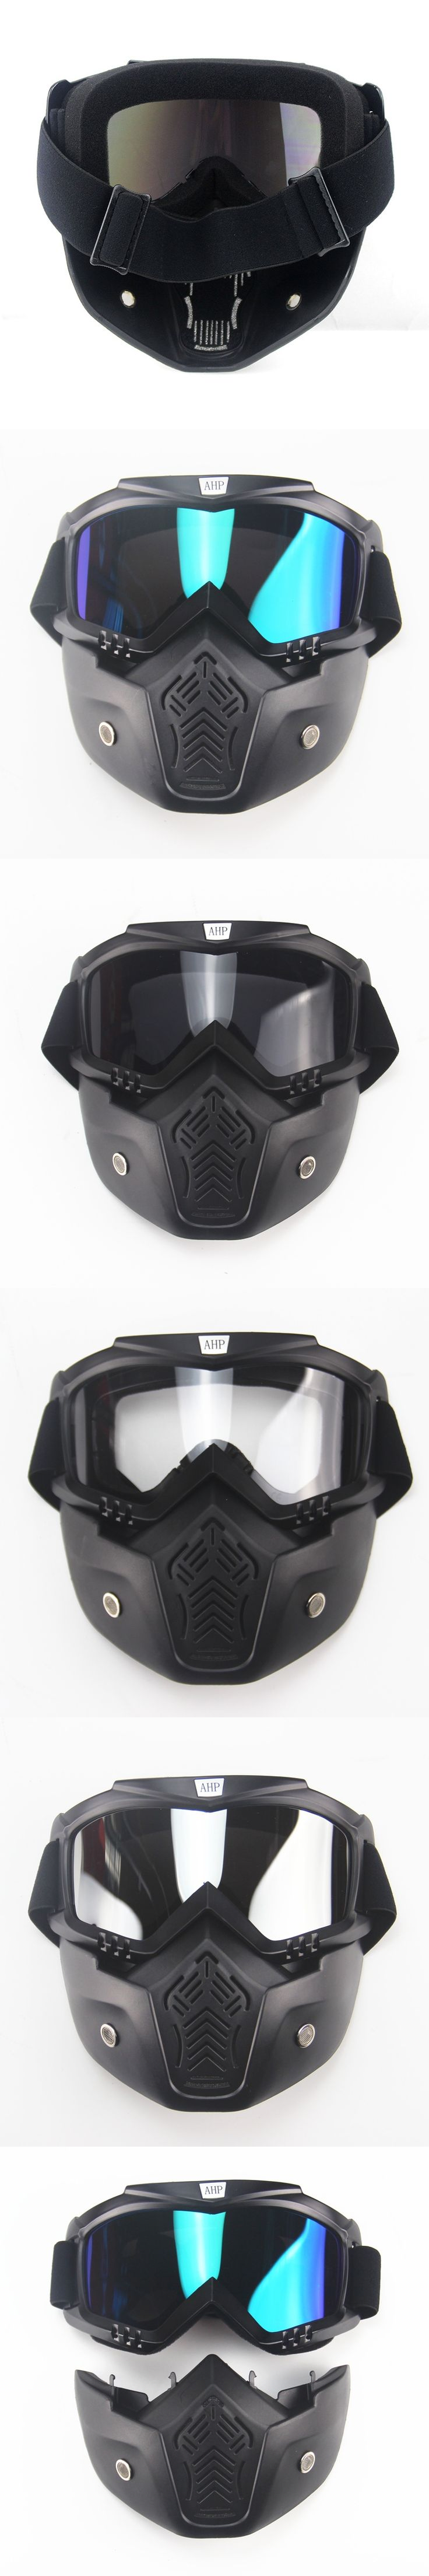 Motocross Modular Mask Detachable Goggles And Mouth Filter Perfect for Open Face Motorcycle Half Helmet or Vintage Helmets